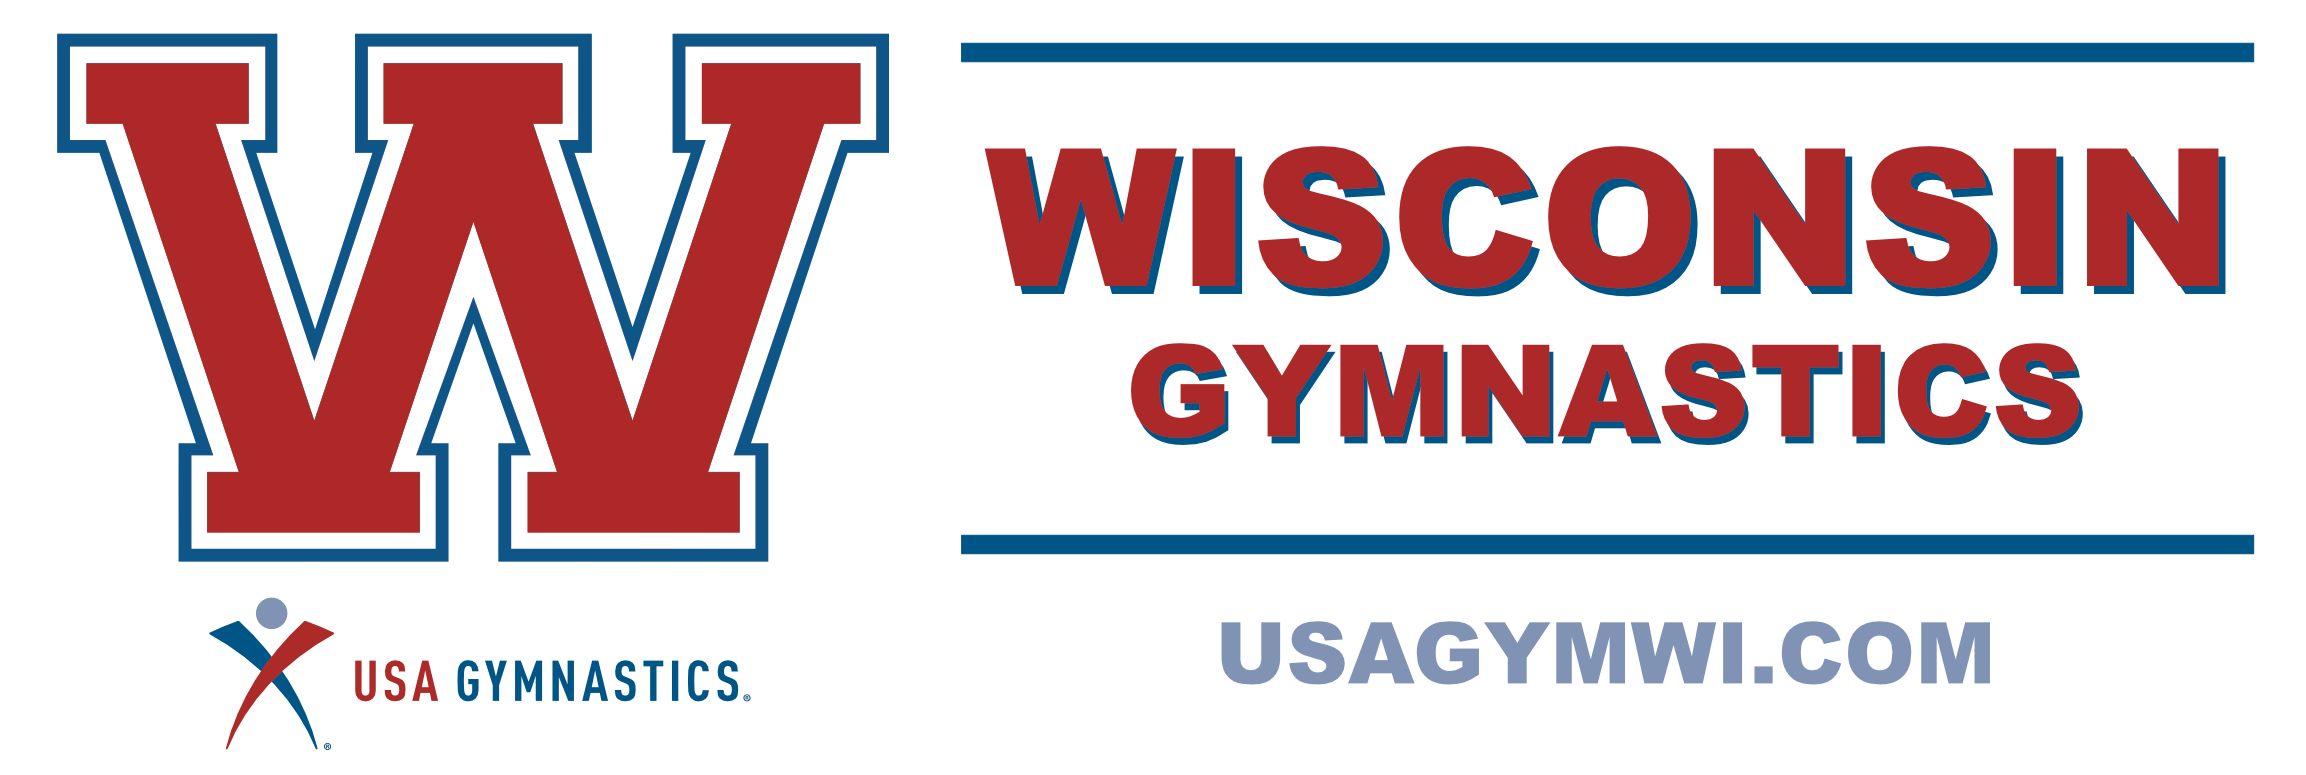 USA Gymnastics - Wisconsin